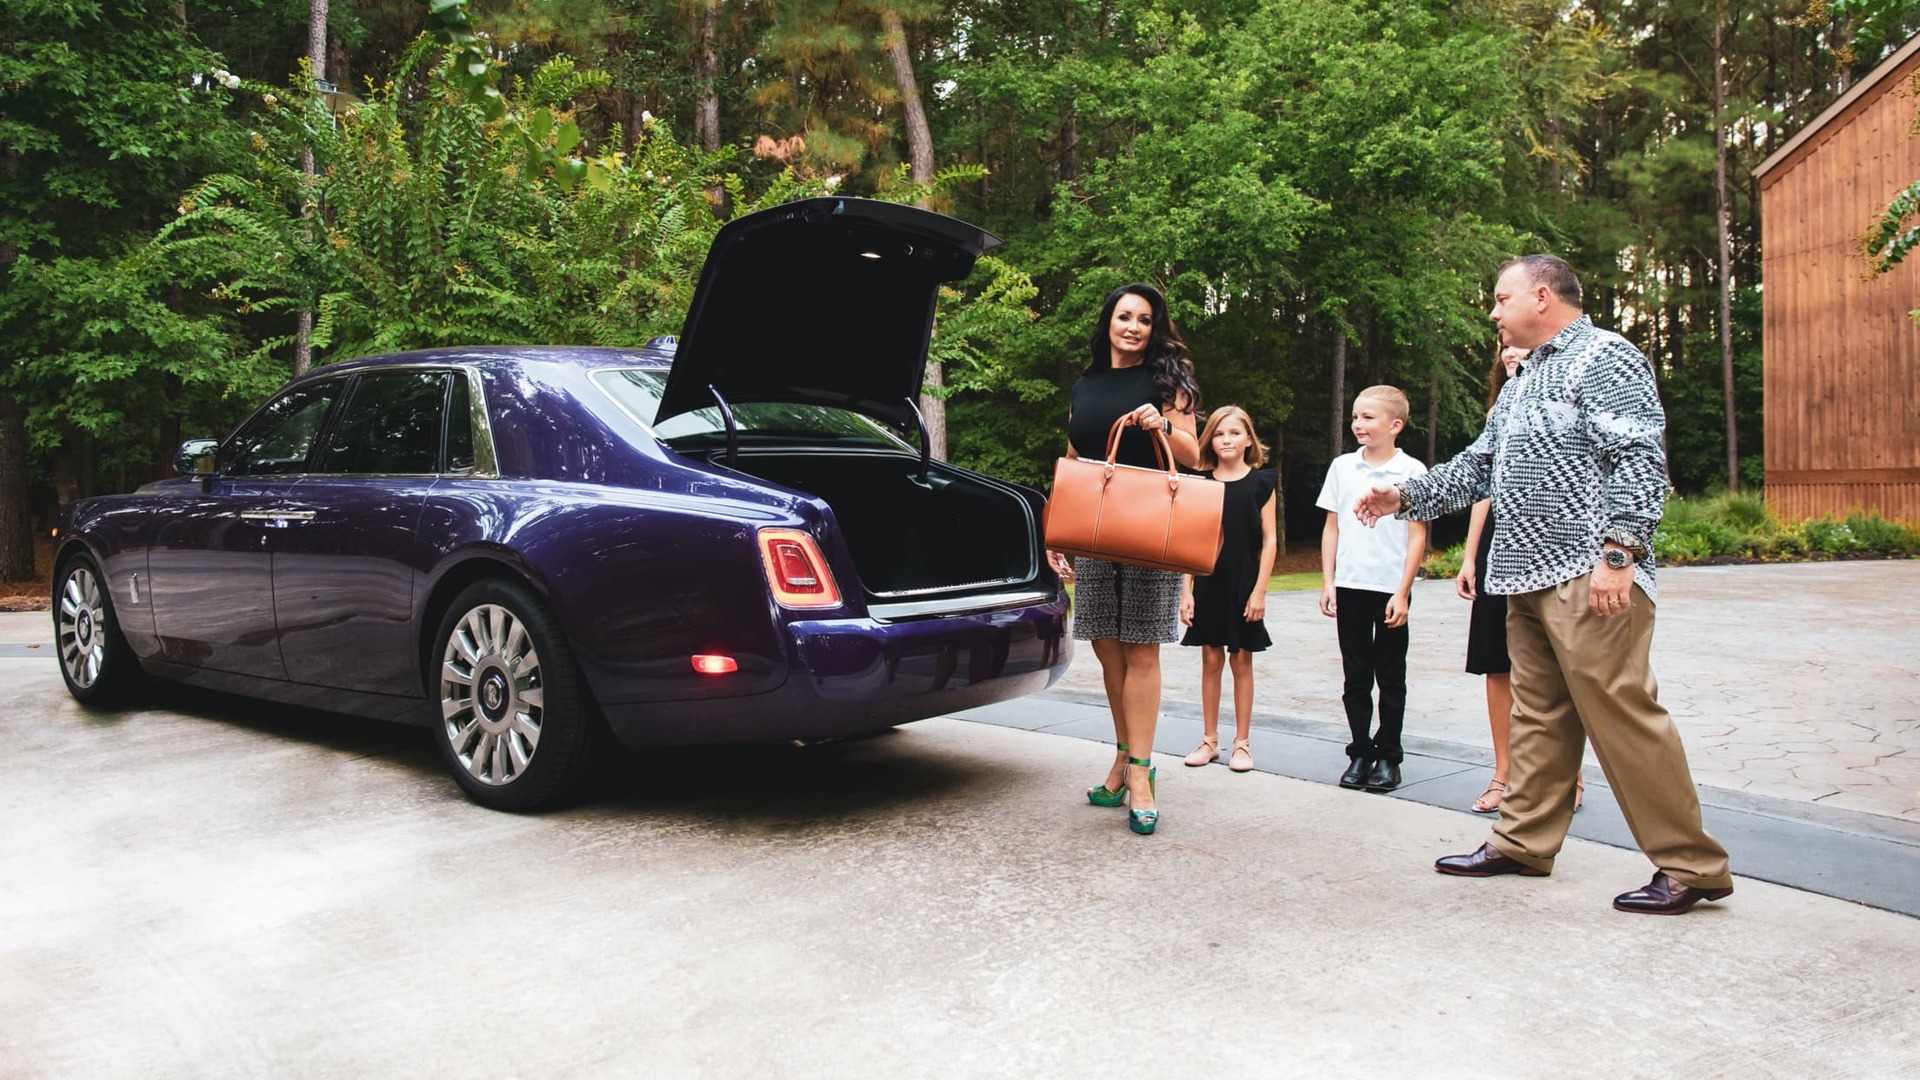 Colleen Ellison and her family standing in front of her purple Rolls-Royce Phantom with the rear boot open, with Colleen holding a leather bag getting ready to put it inside the Phantom